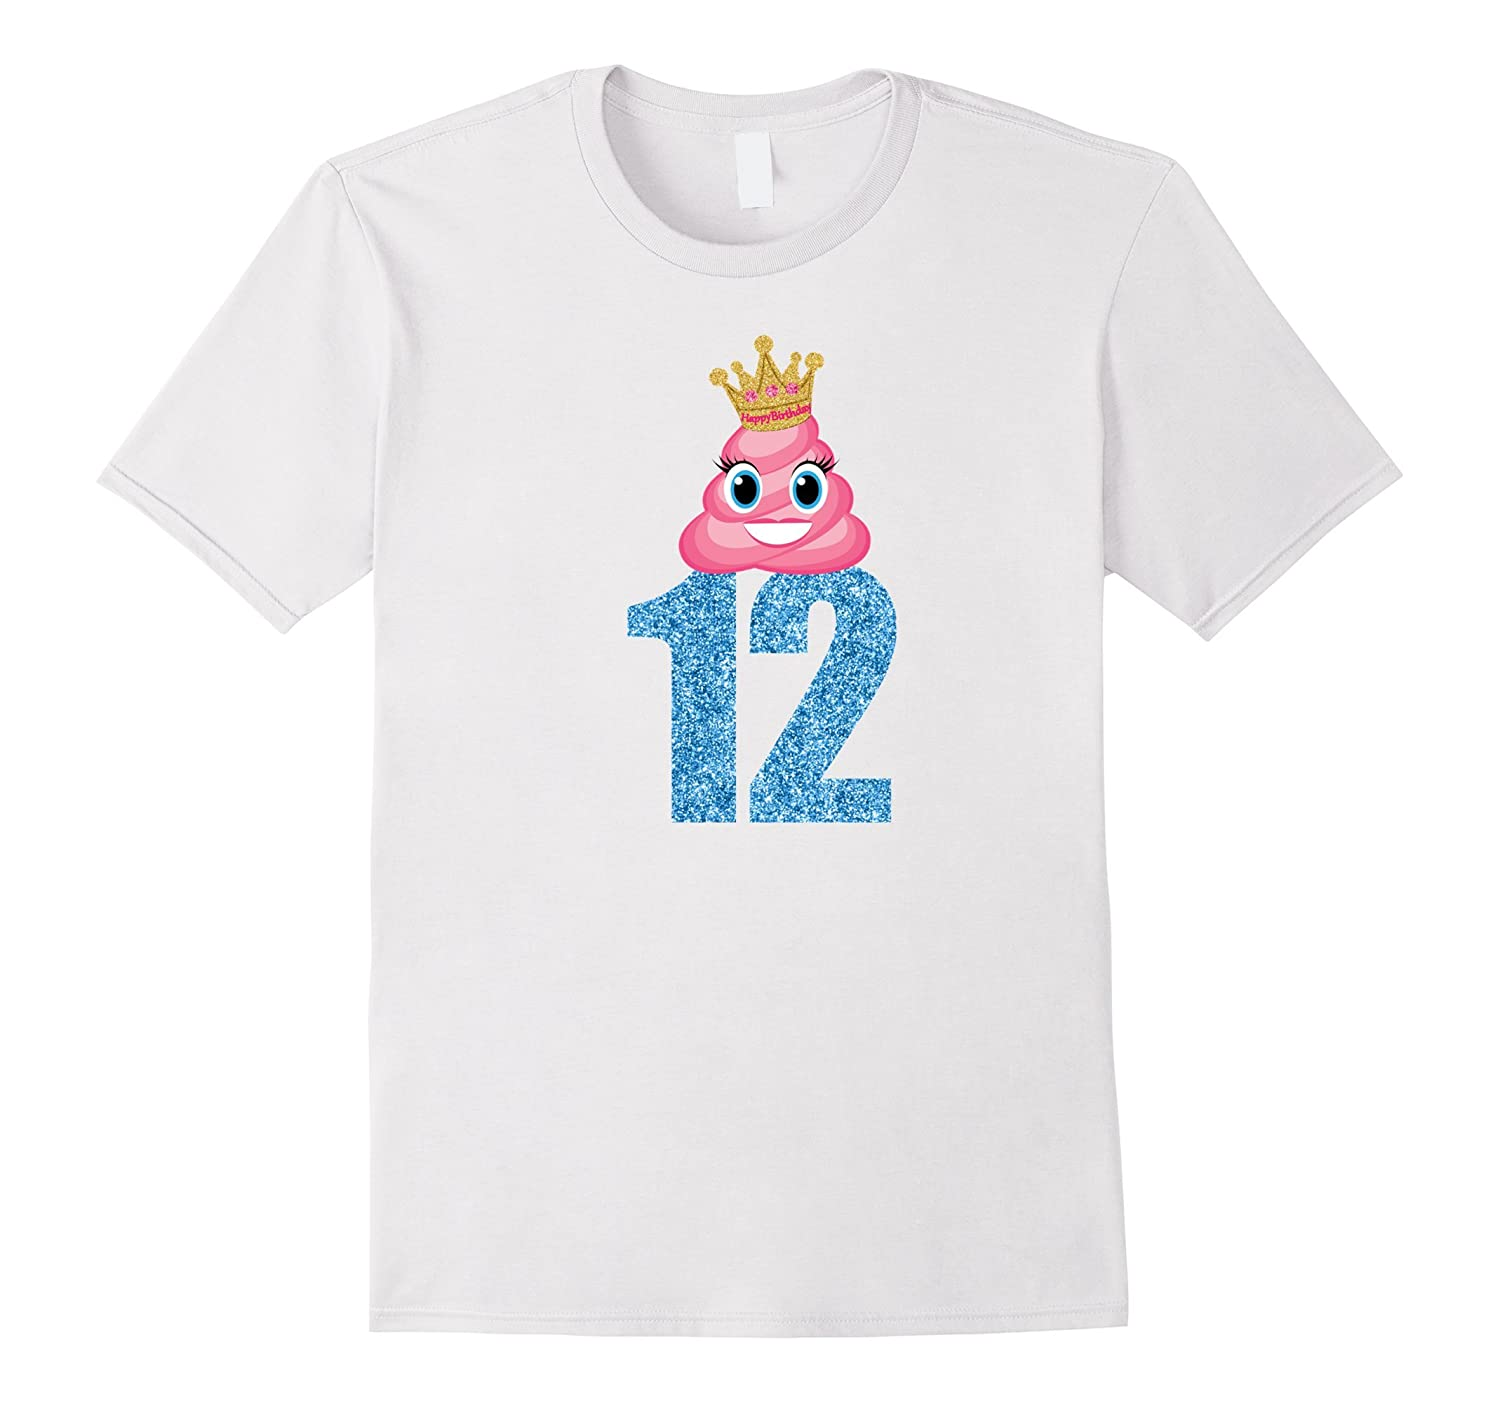 Birthday Shirt For Girls 12 Kids Gift-CD